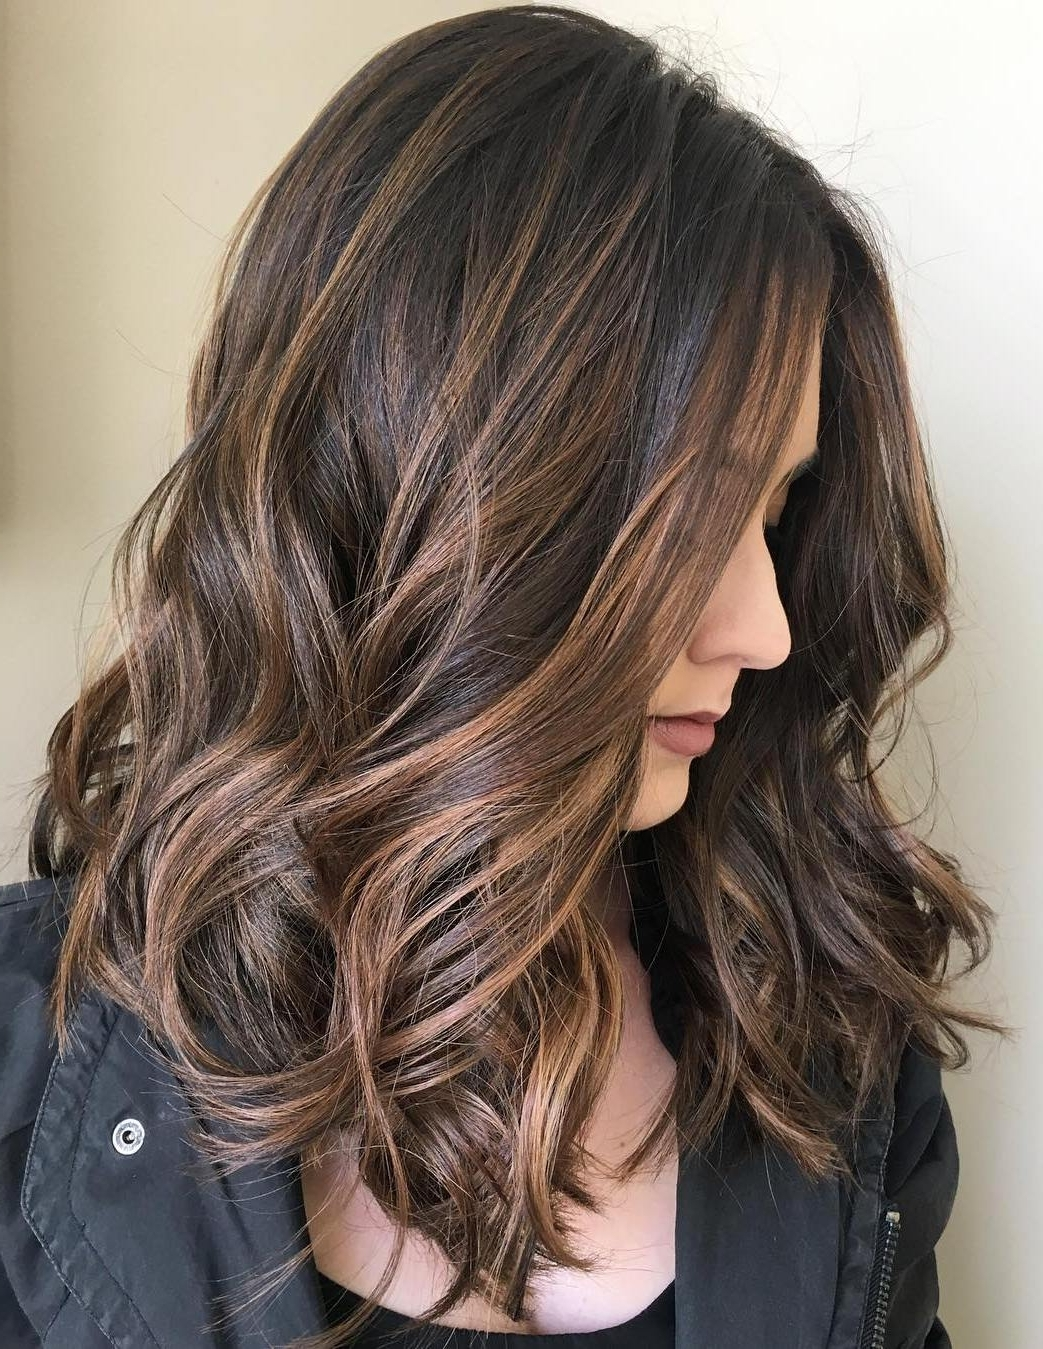 Balayage Hair Ideas For 2018 — The Right Hairstyles With Best And Newest Feathered Pixie With Balayage Highlights (View 5 of 20)